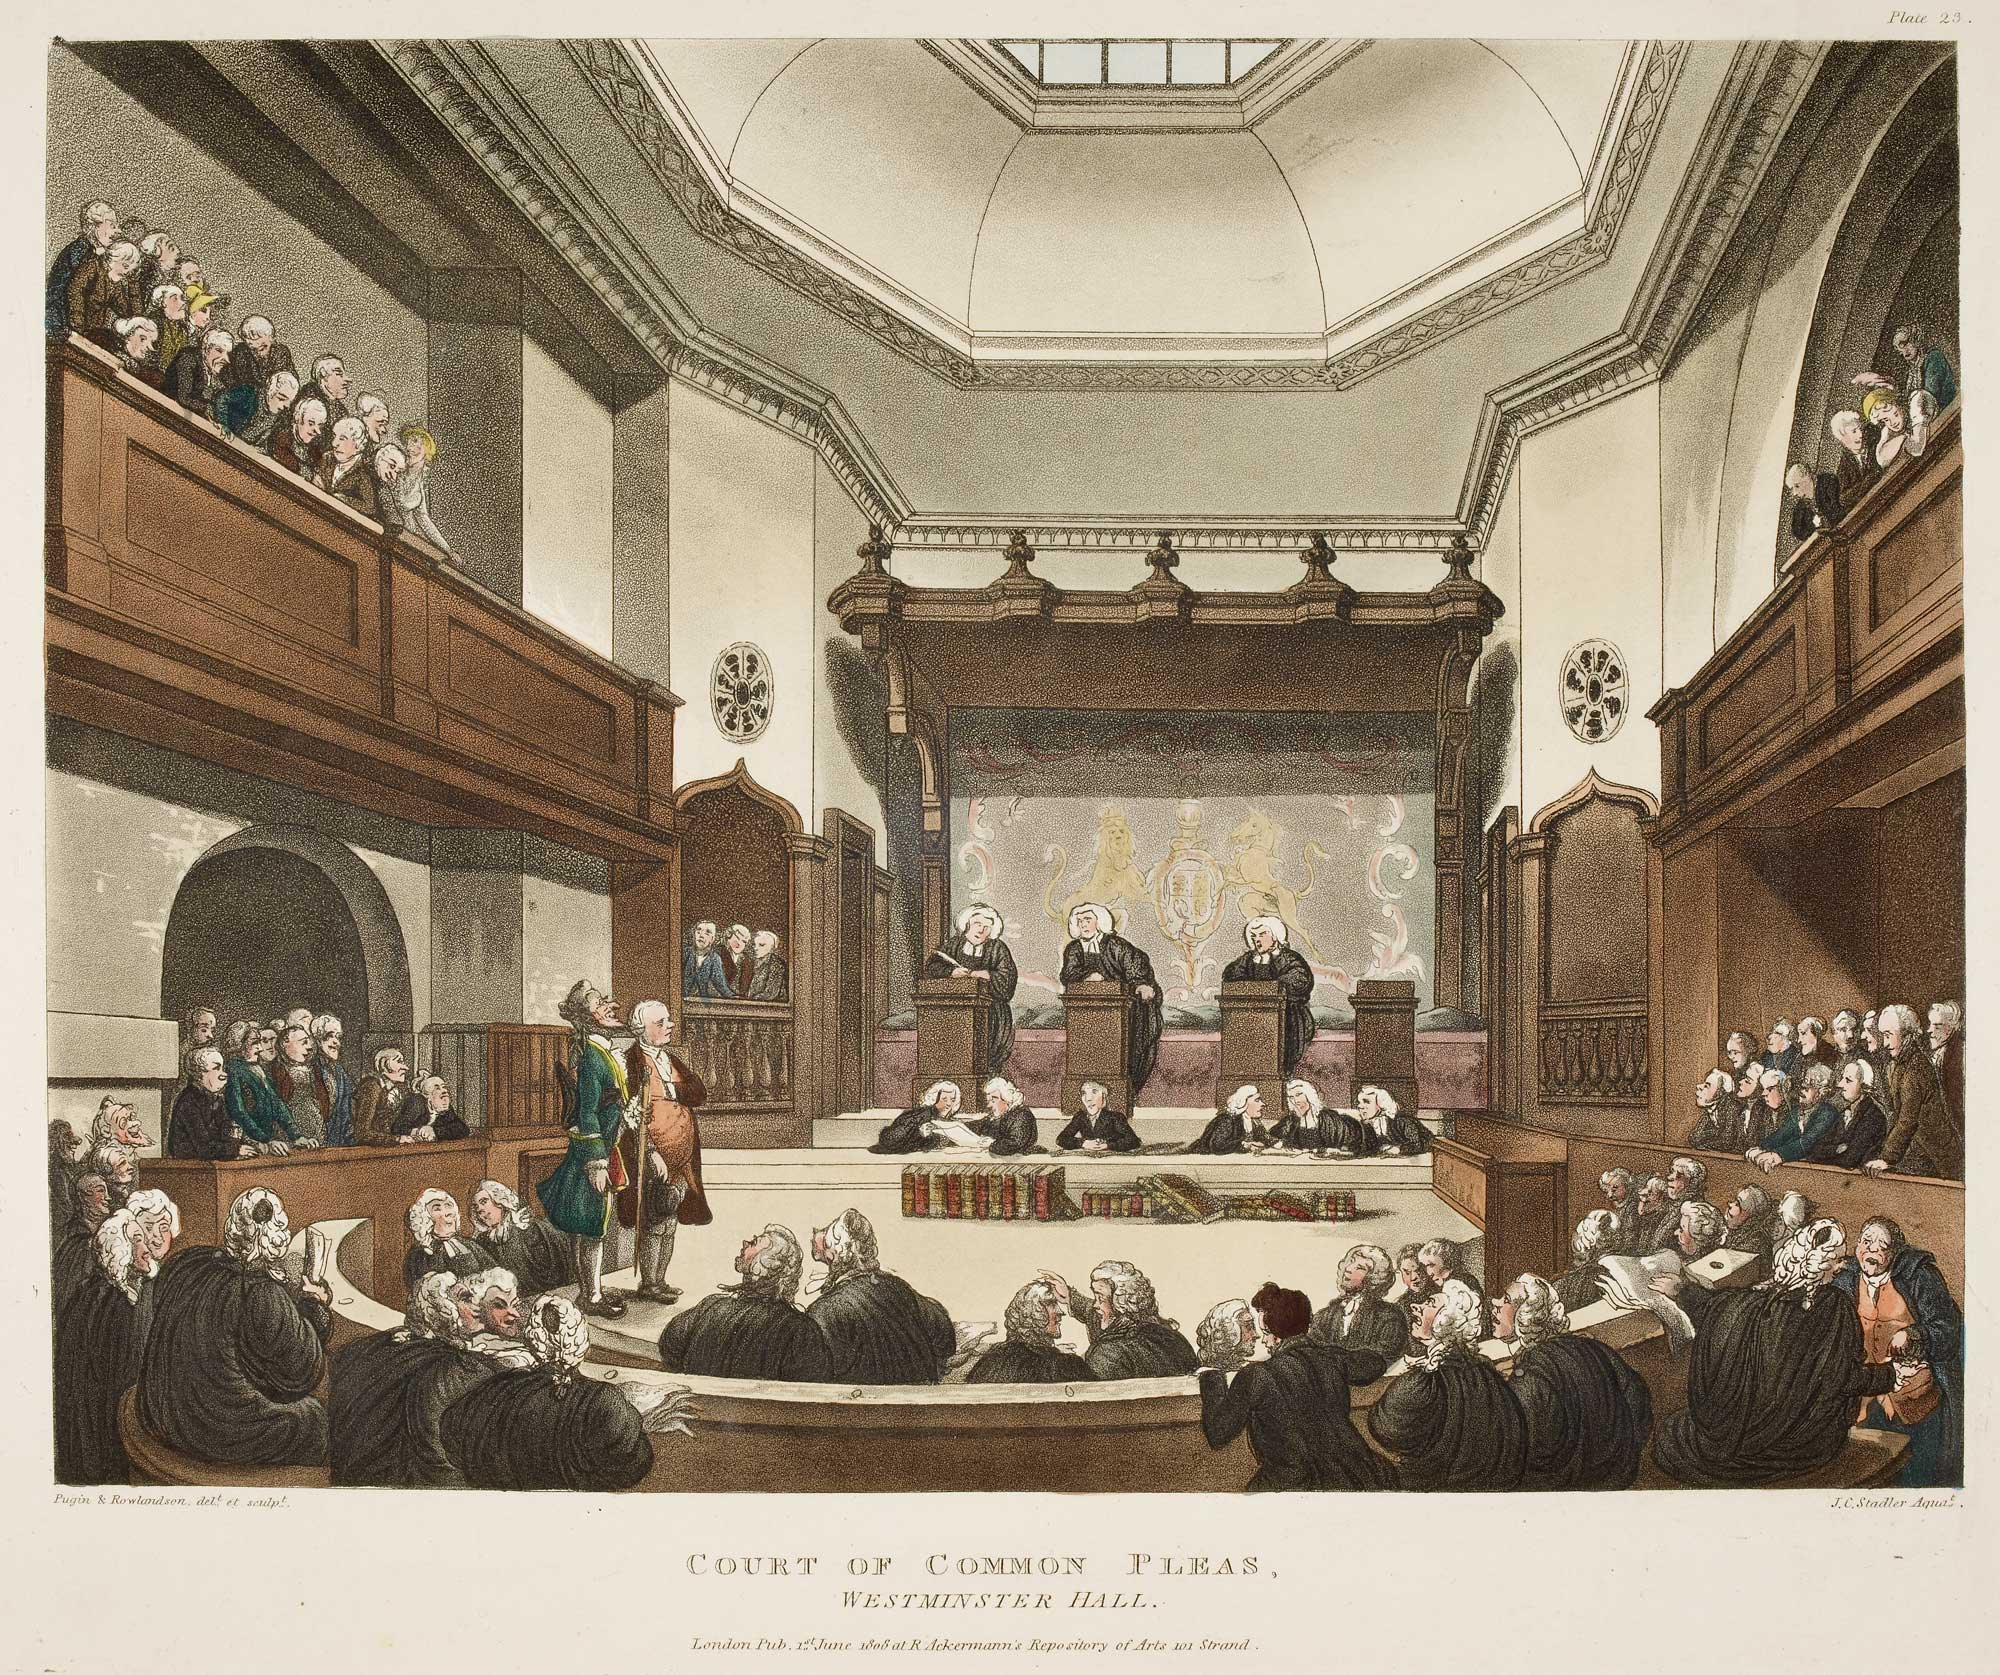 Illustration of the Court of Common Pleas, Westminster Hall